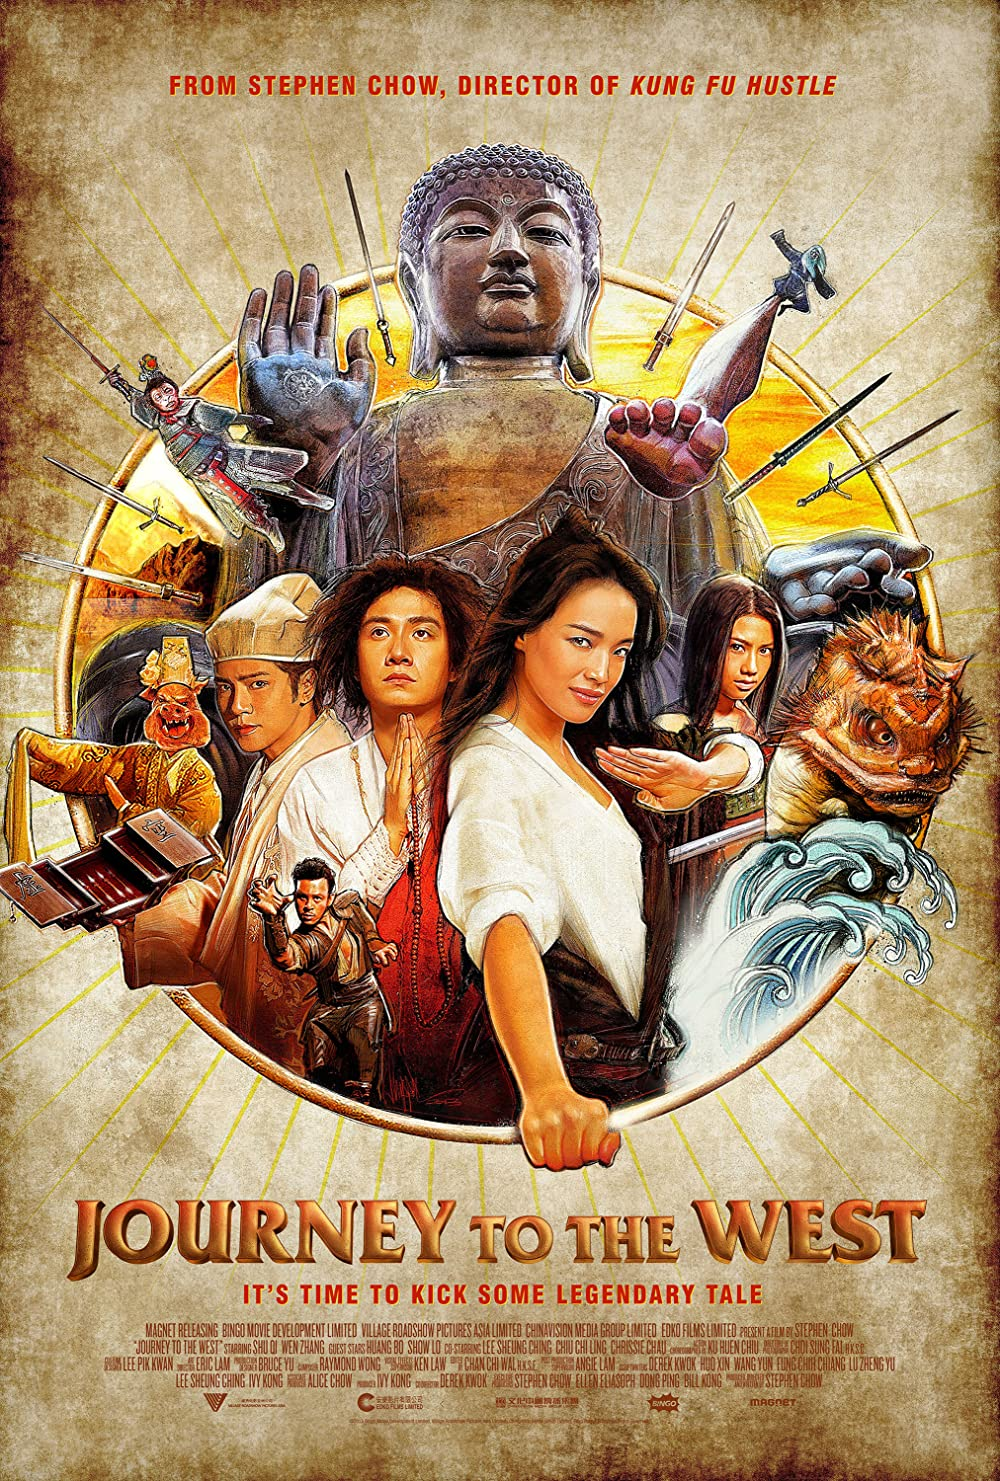 Download Journey to the West Conquering the Demons 2013 Hindi ORG Dual Audio 480p BluRay ESub 400MB